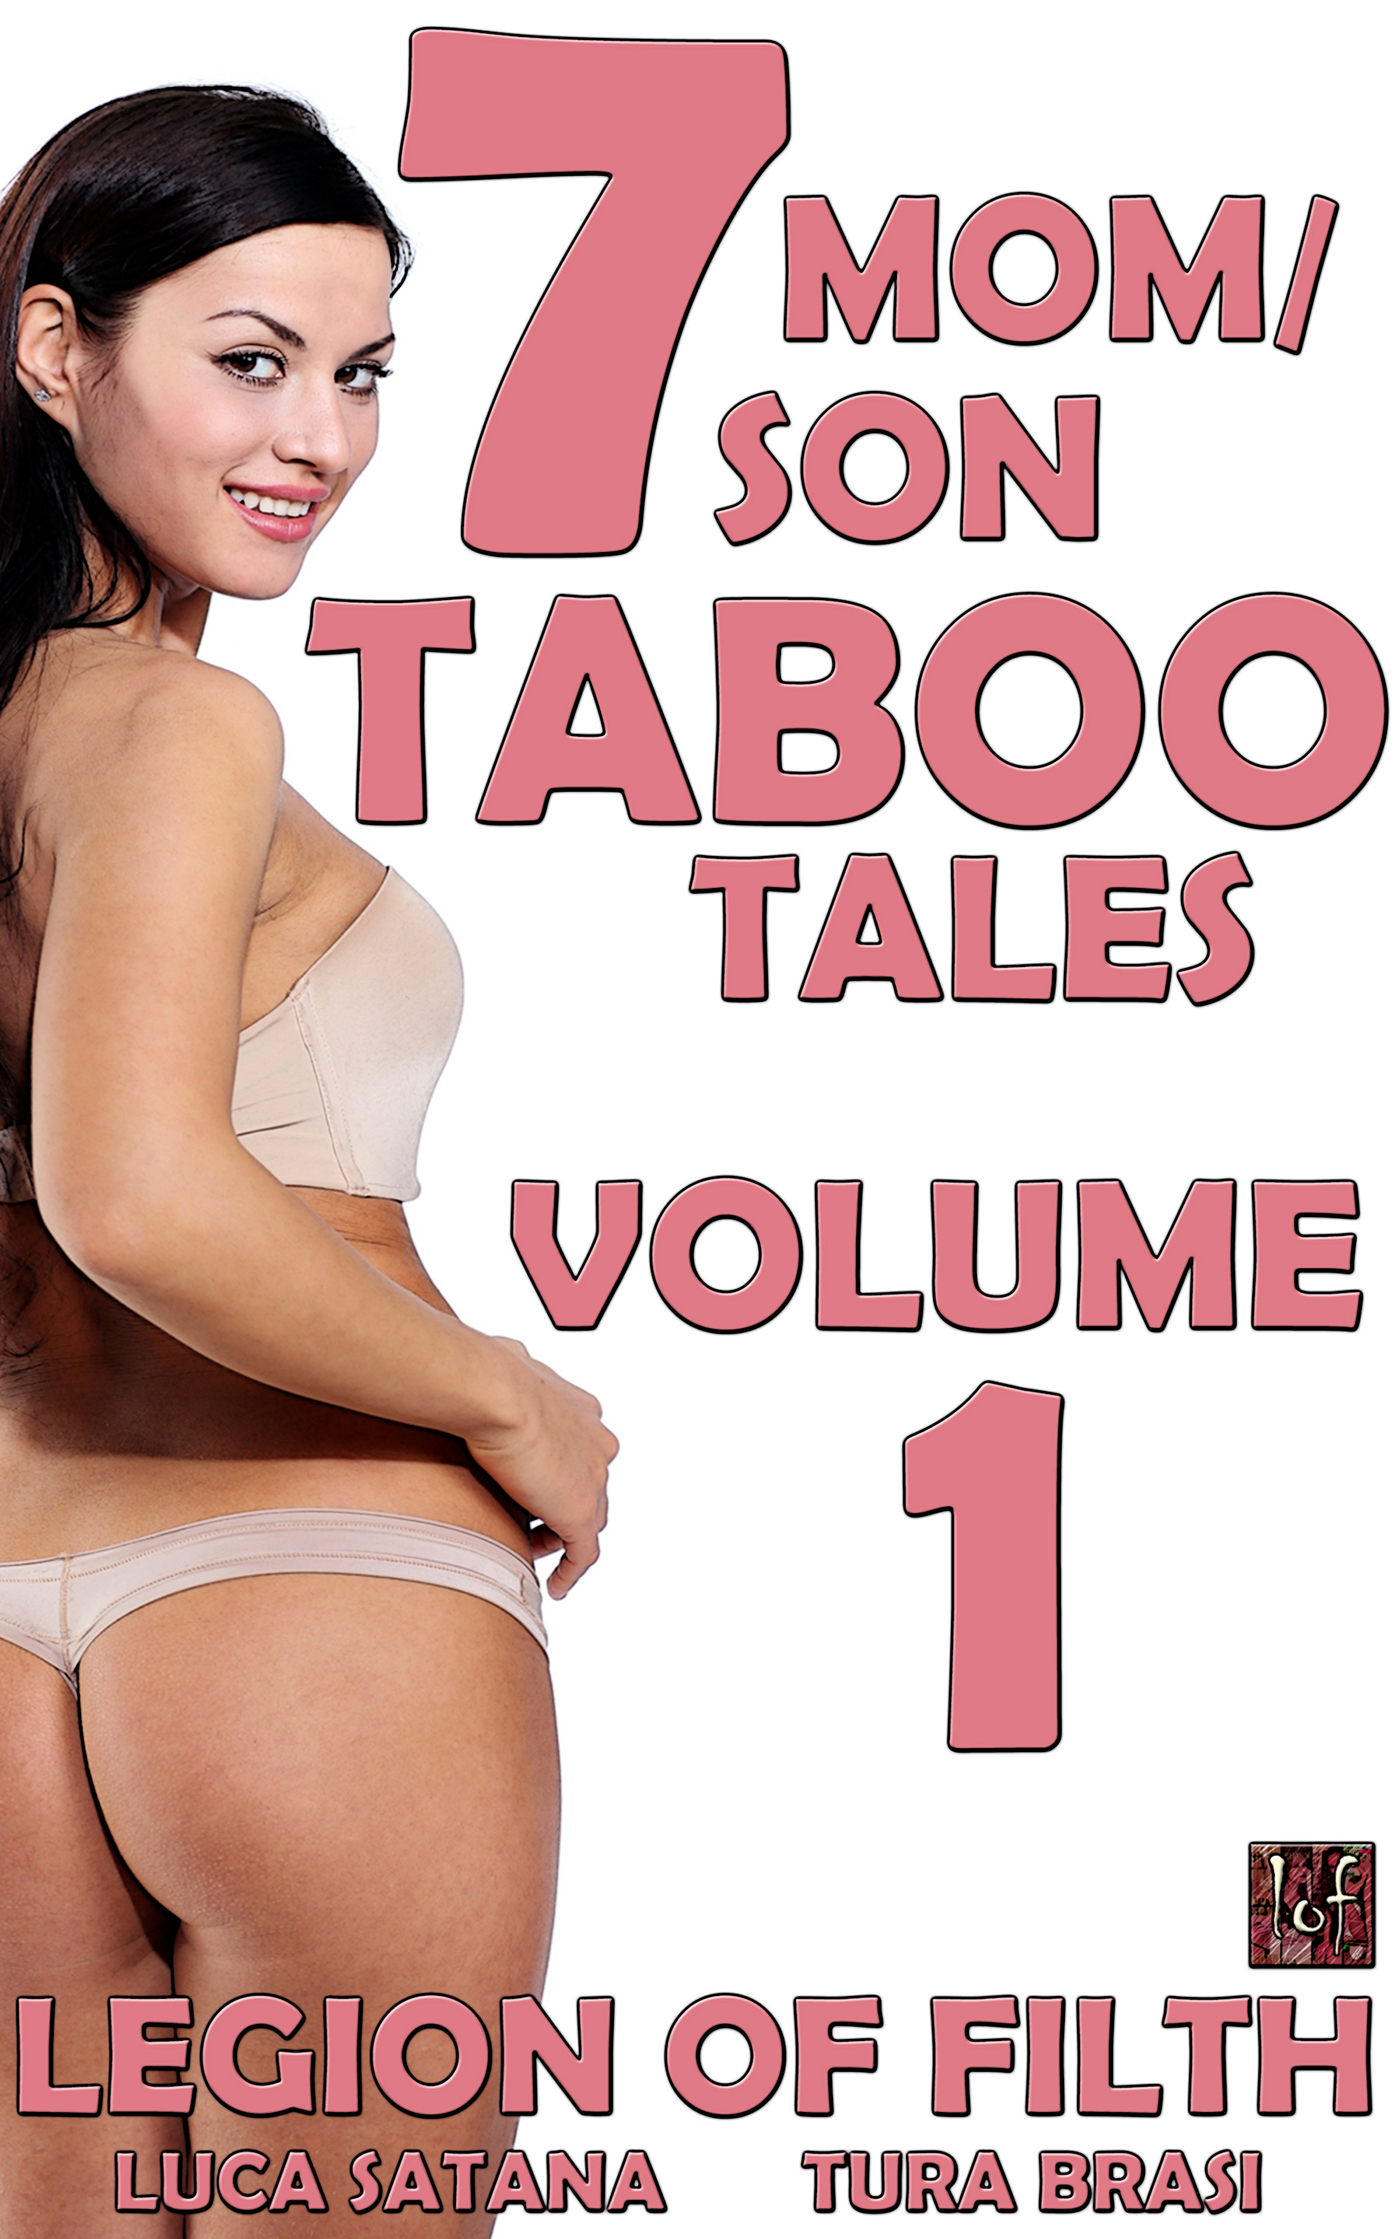 7 Mom/Son Taboo Tales: Volume 1